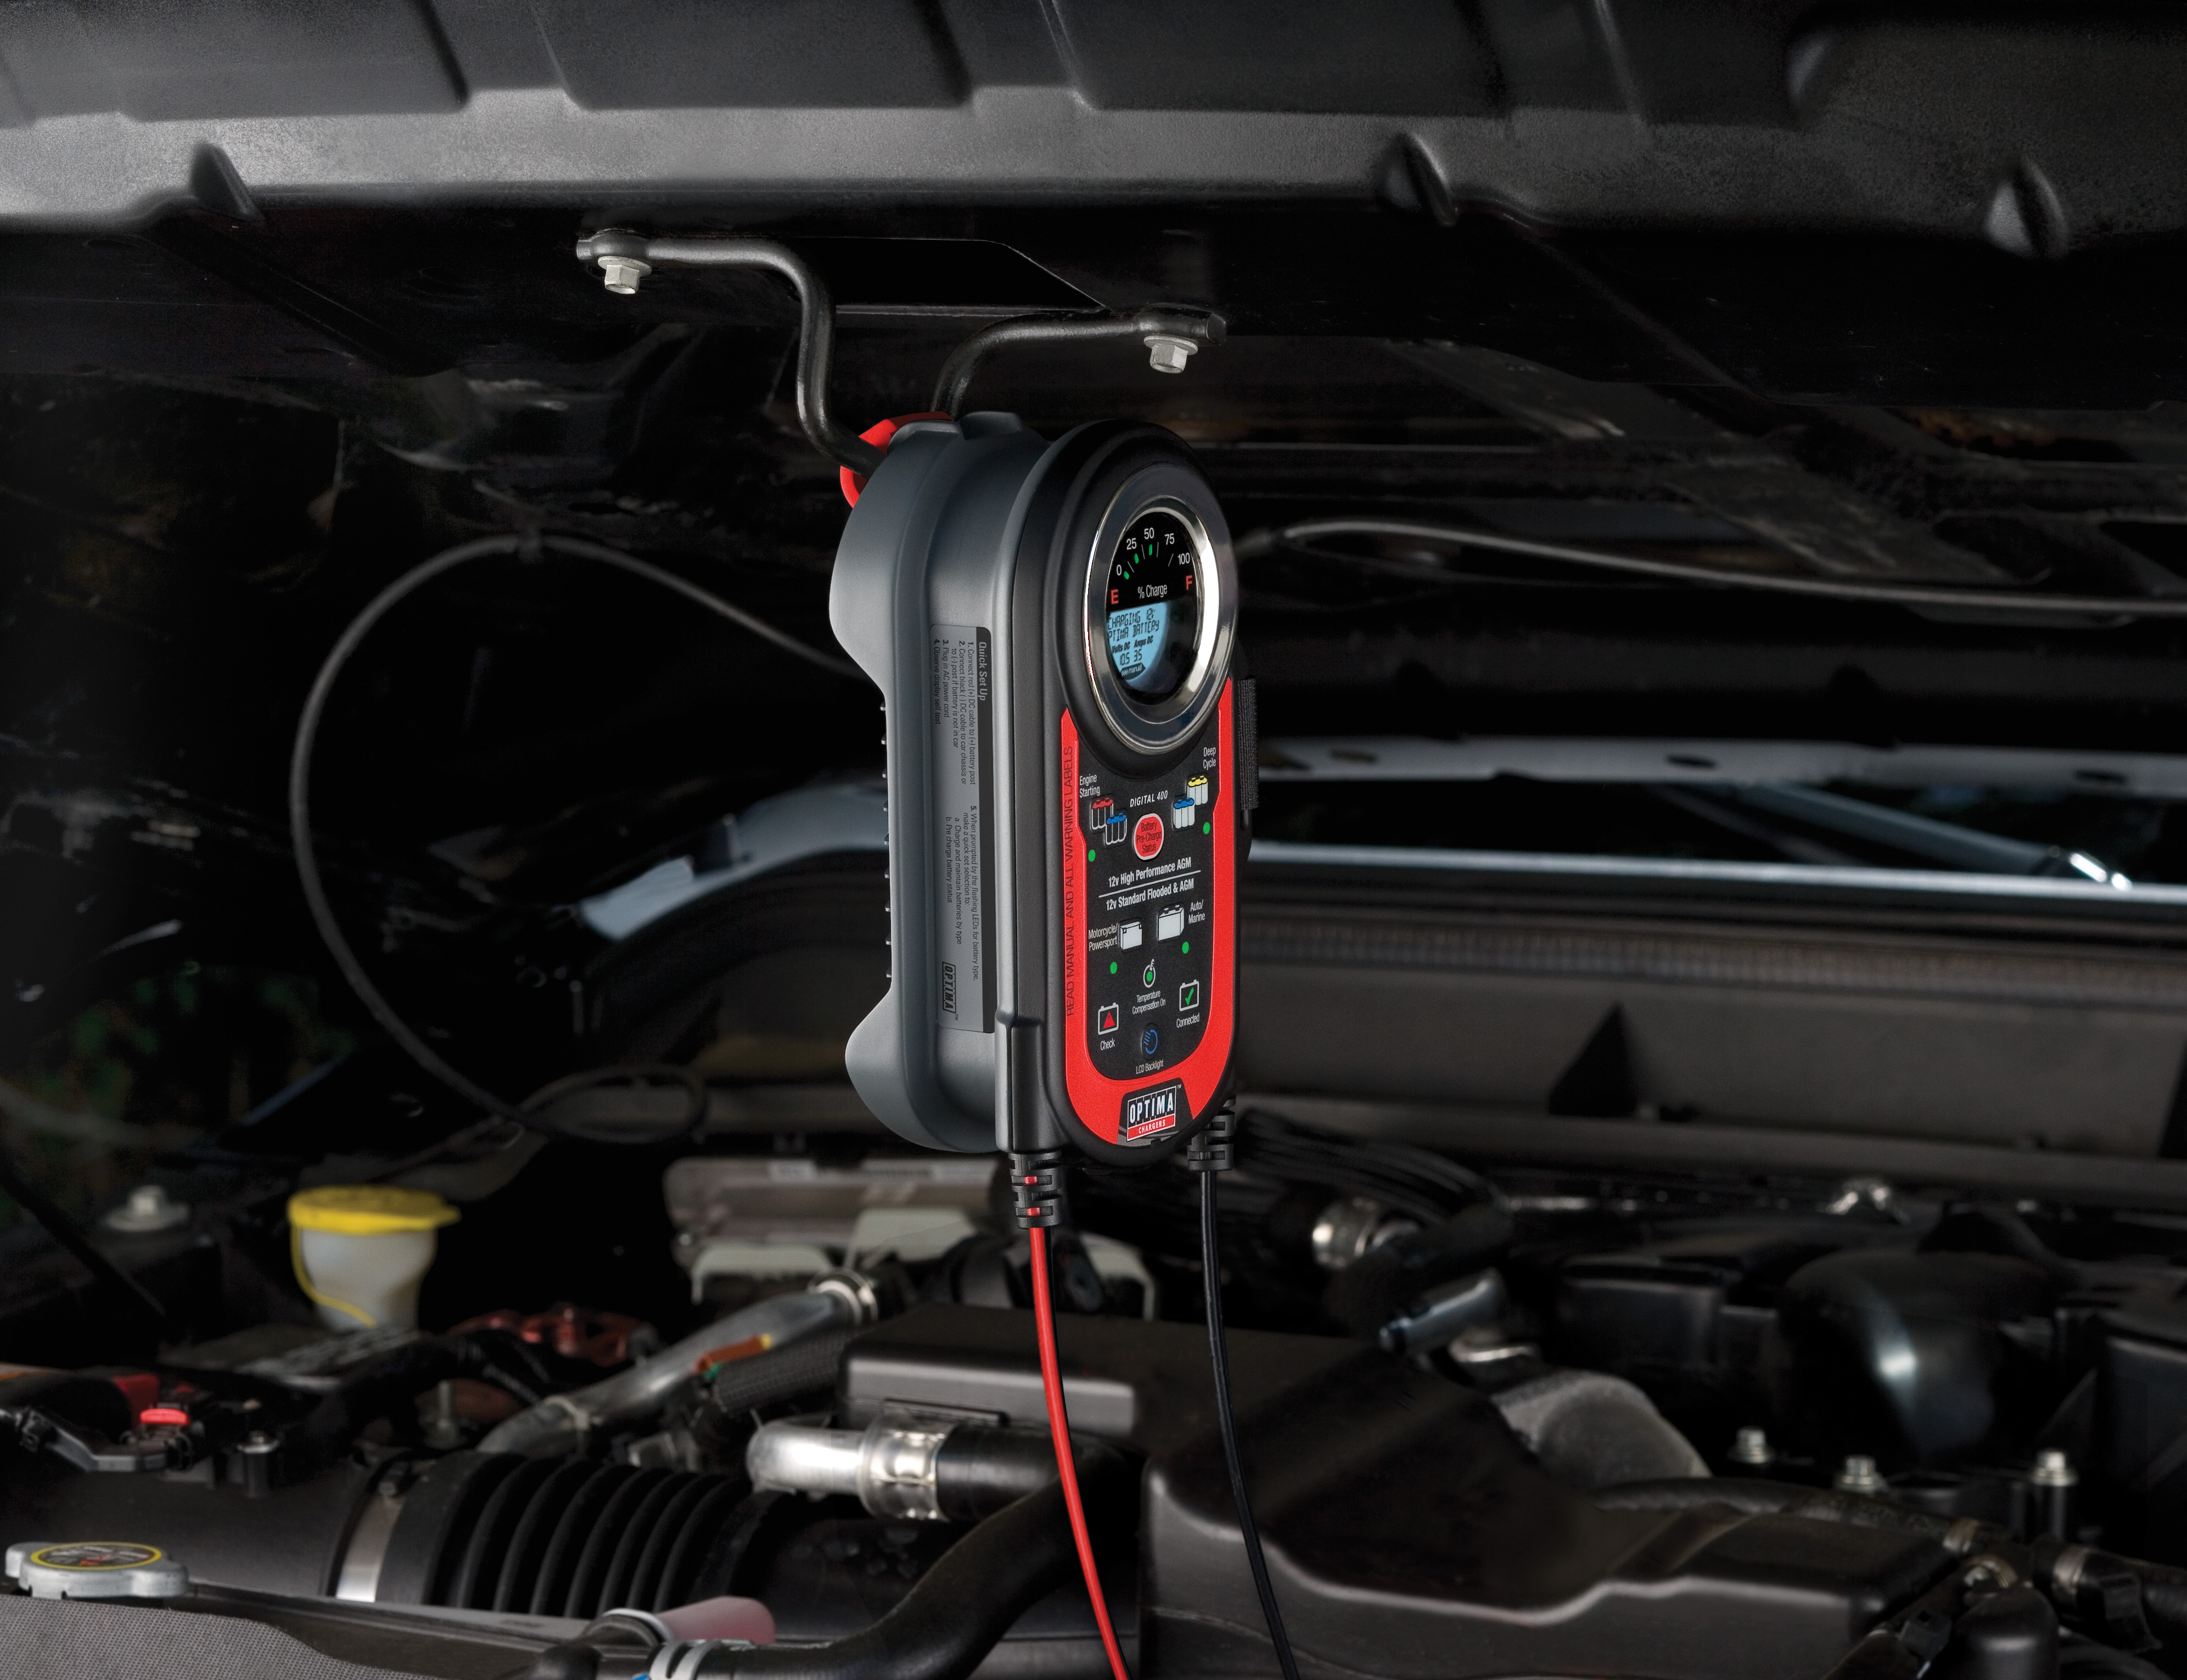 Should you charge a new car battery